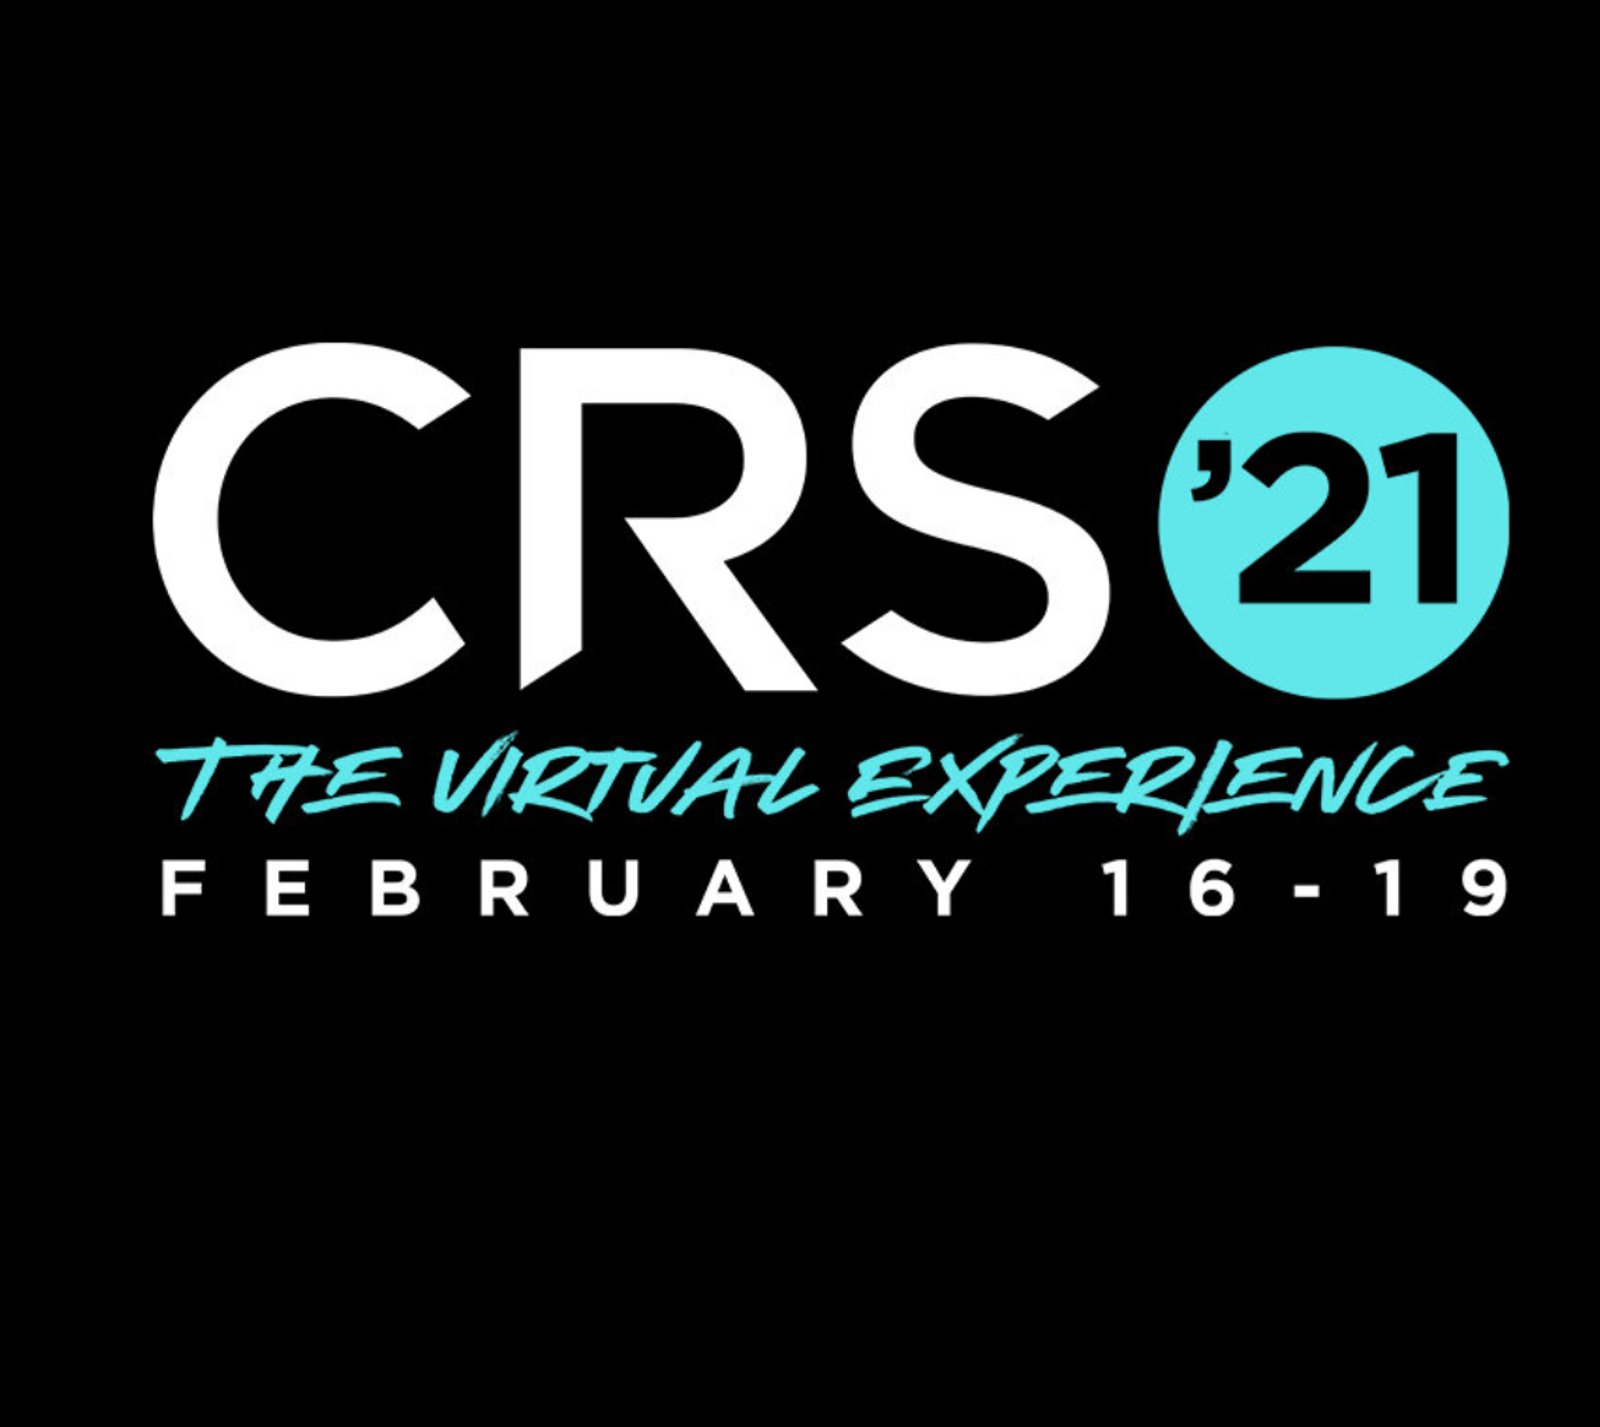 CRS 2021: The Virtual Experience